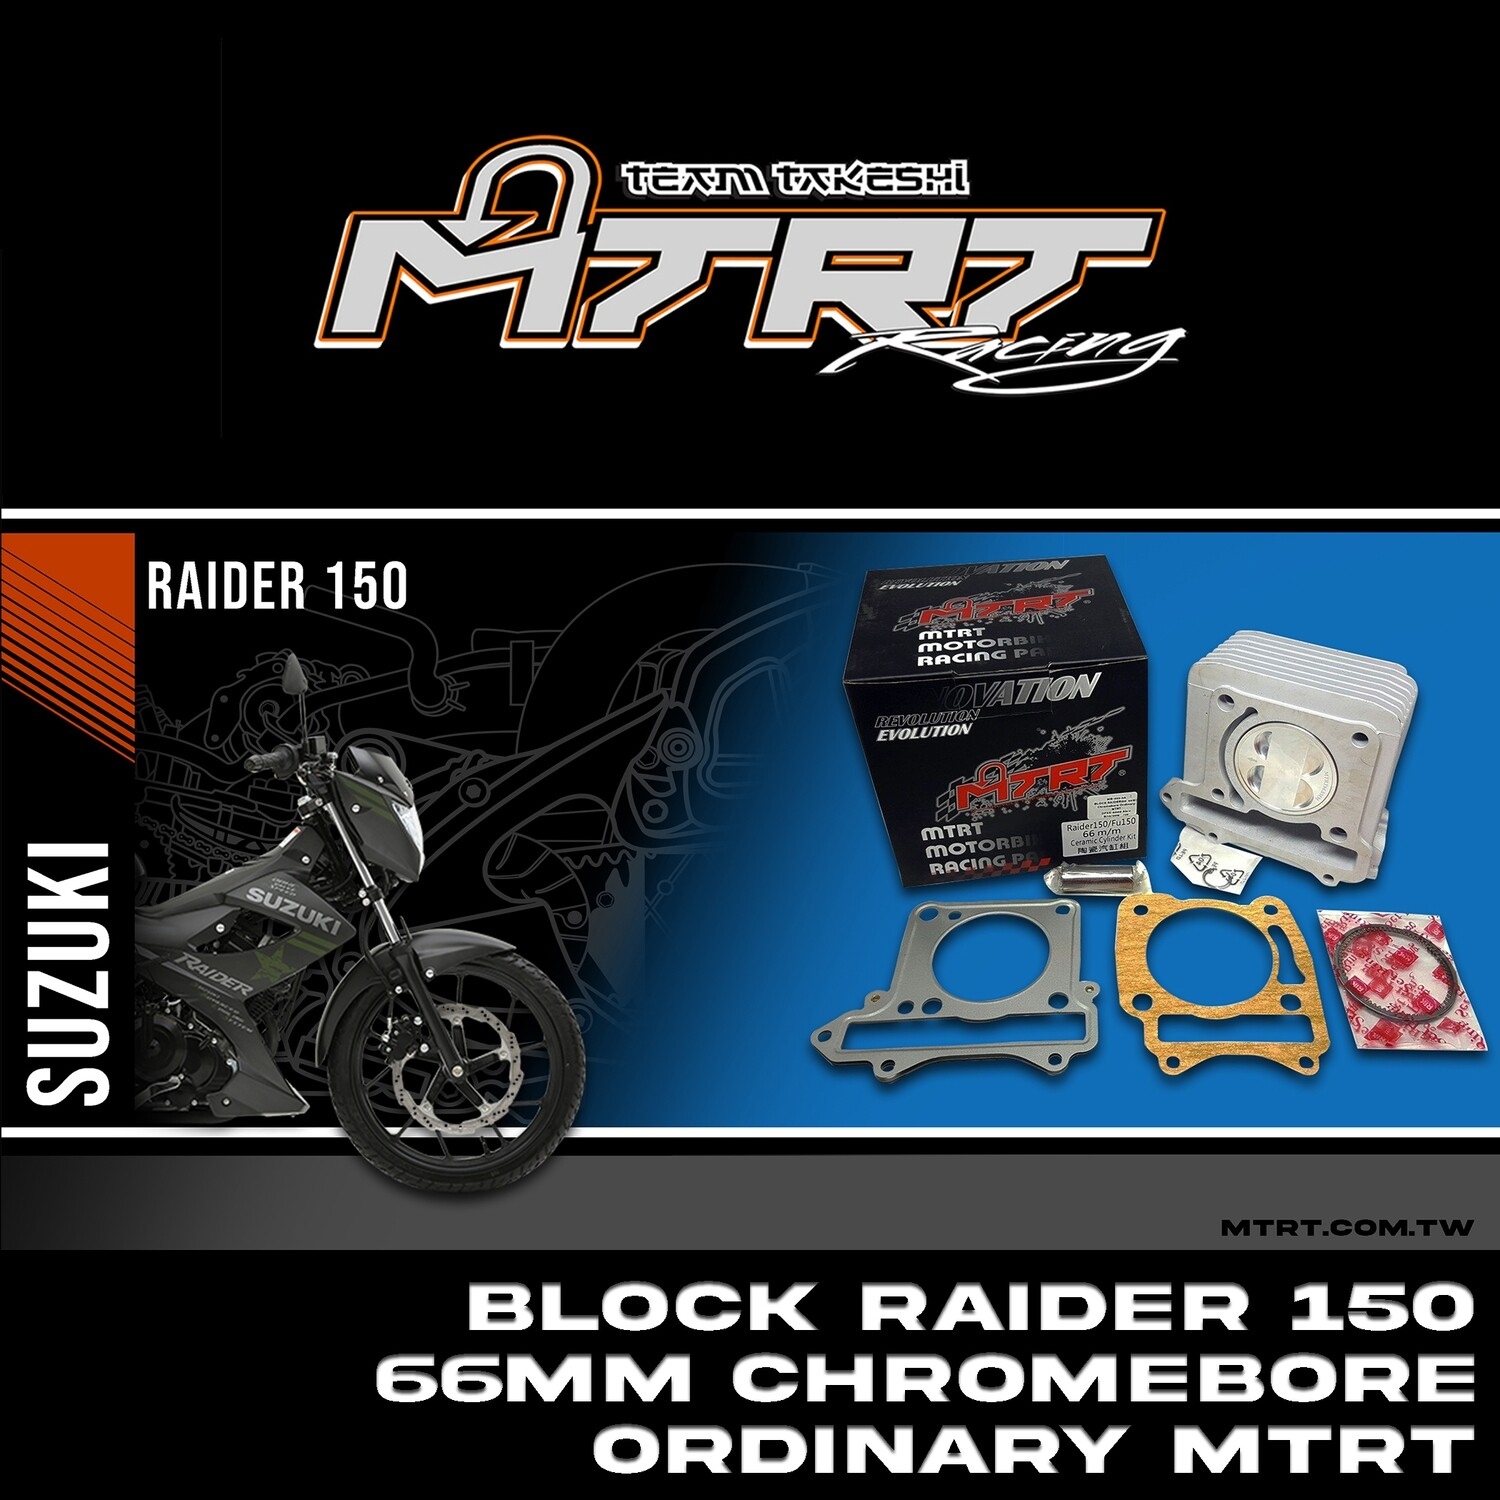 BLOCK RAIDER150  66MM Chromebore Ordinary MTRT